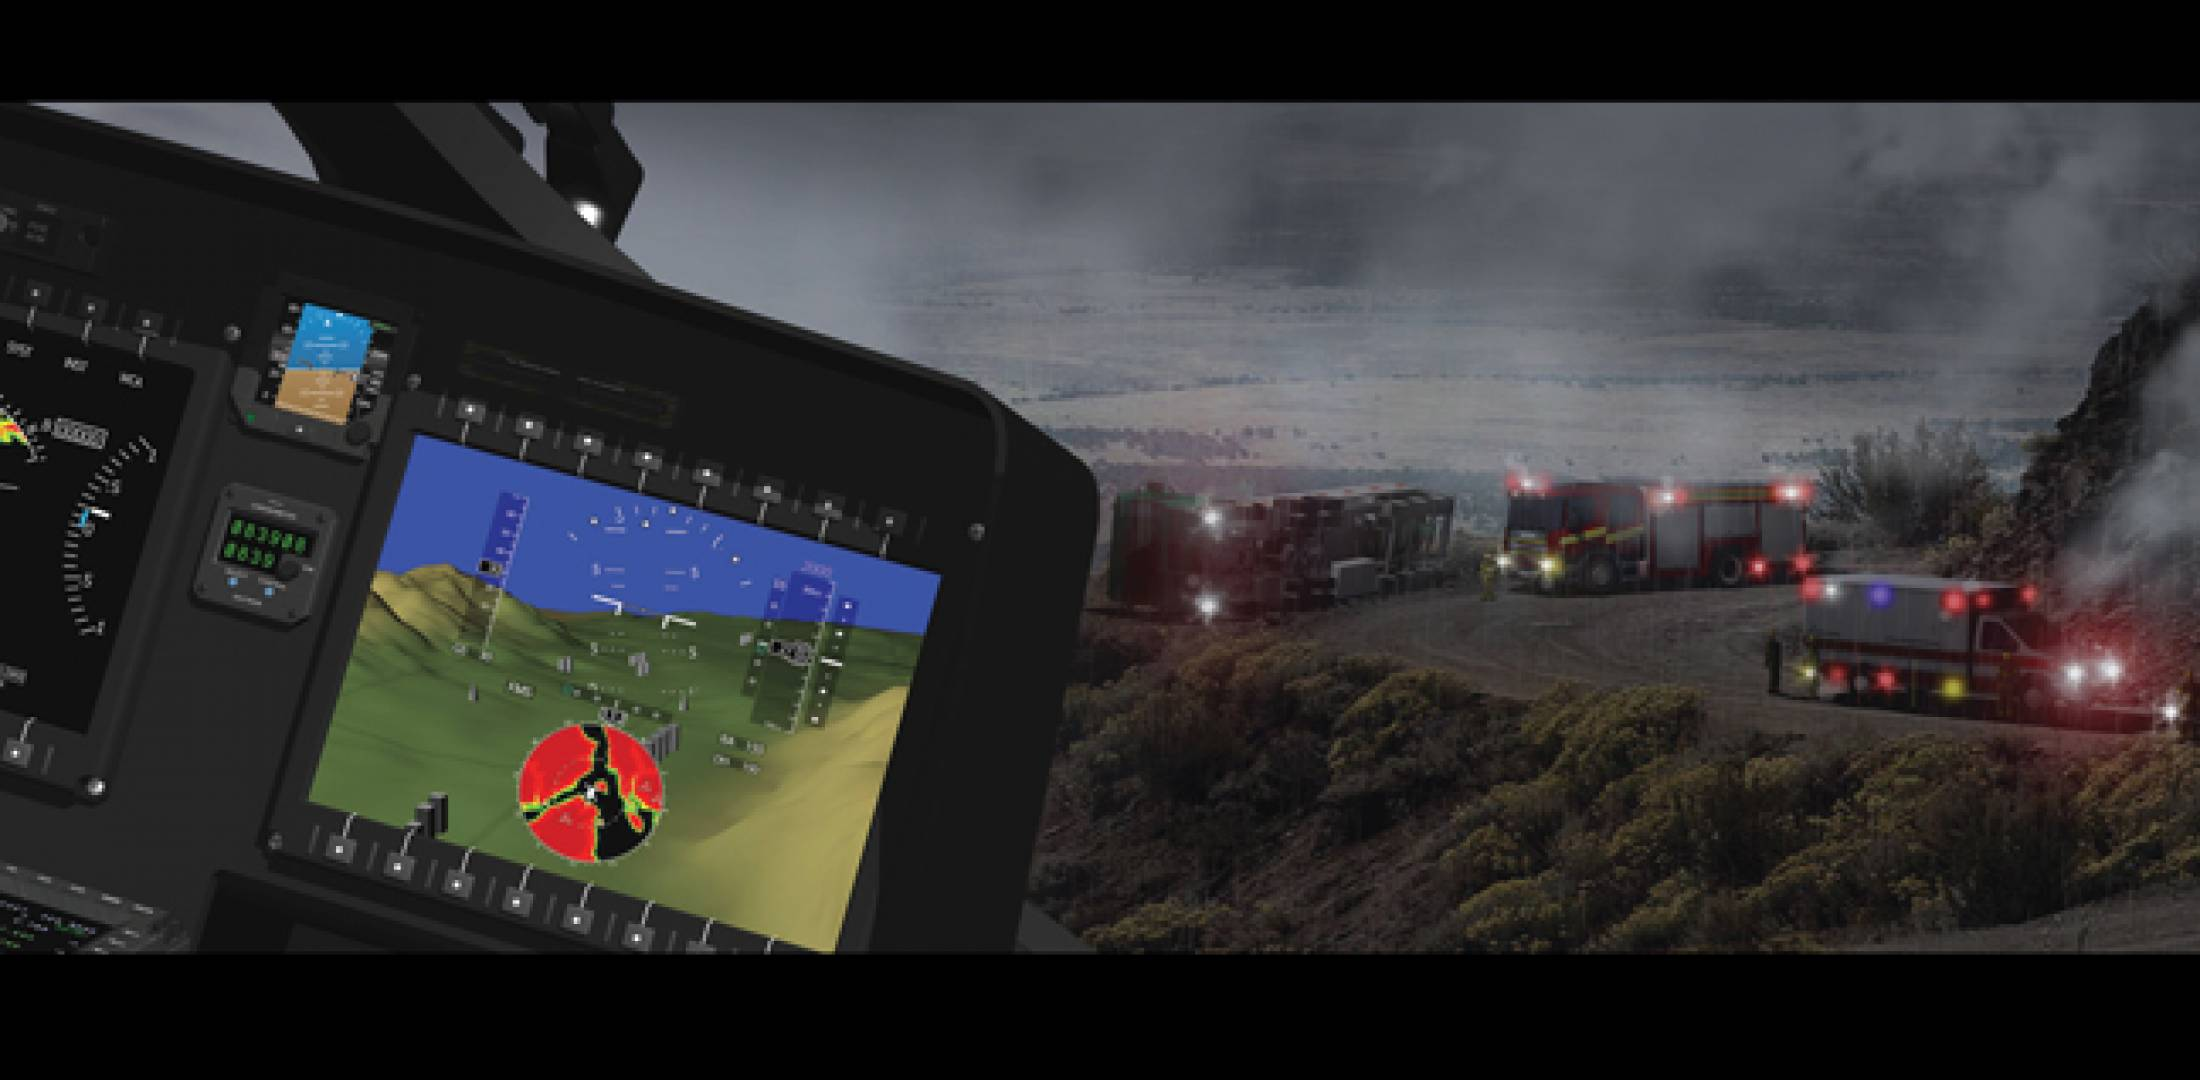 The new line of HeliSure helicopter synthetic vision and Taws products will appear first in AgustaWestland models.